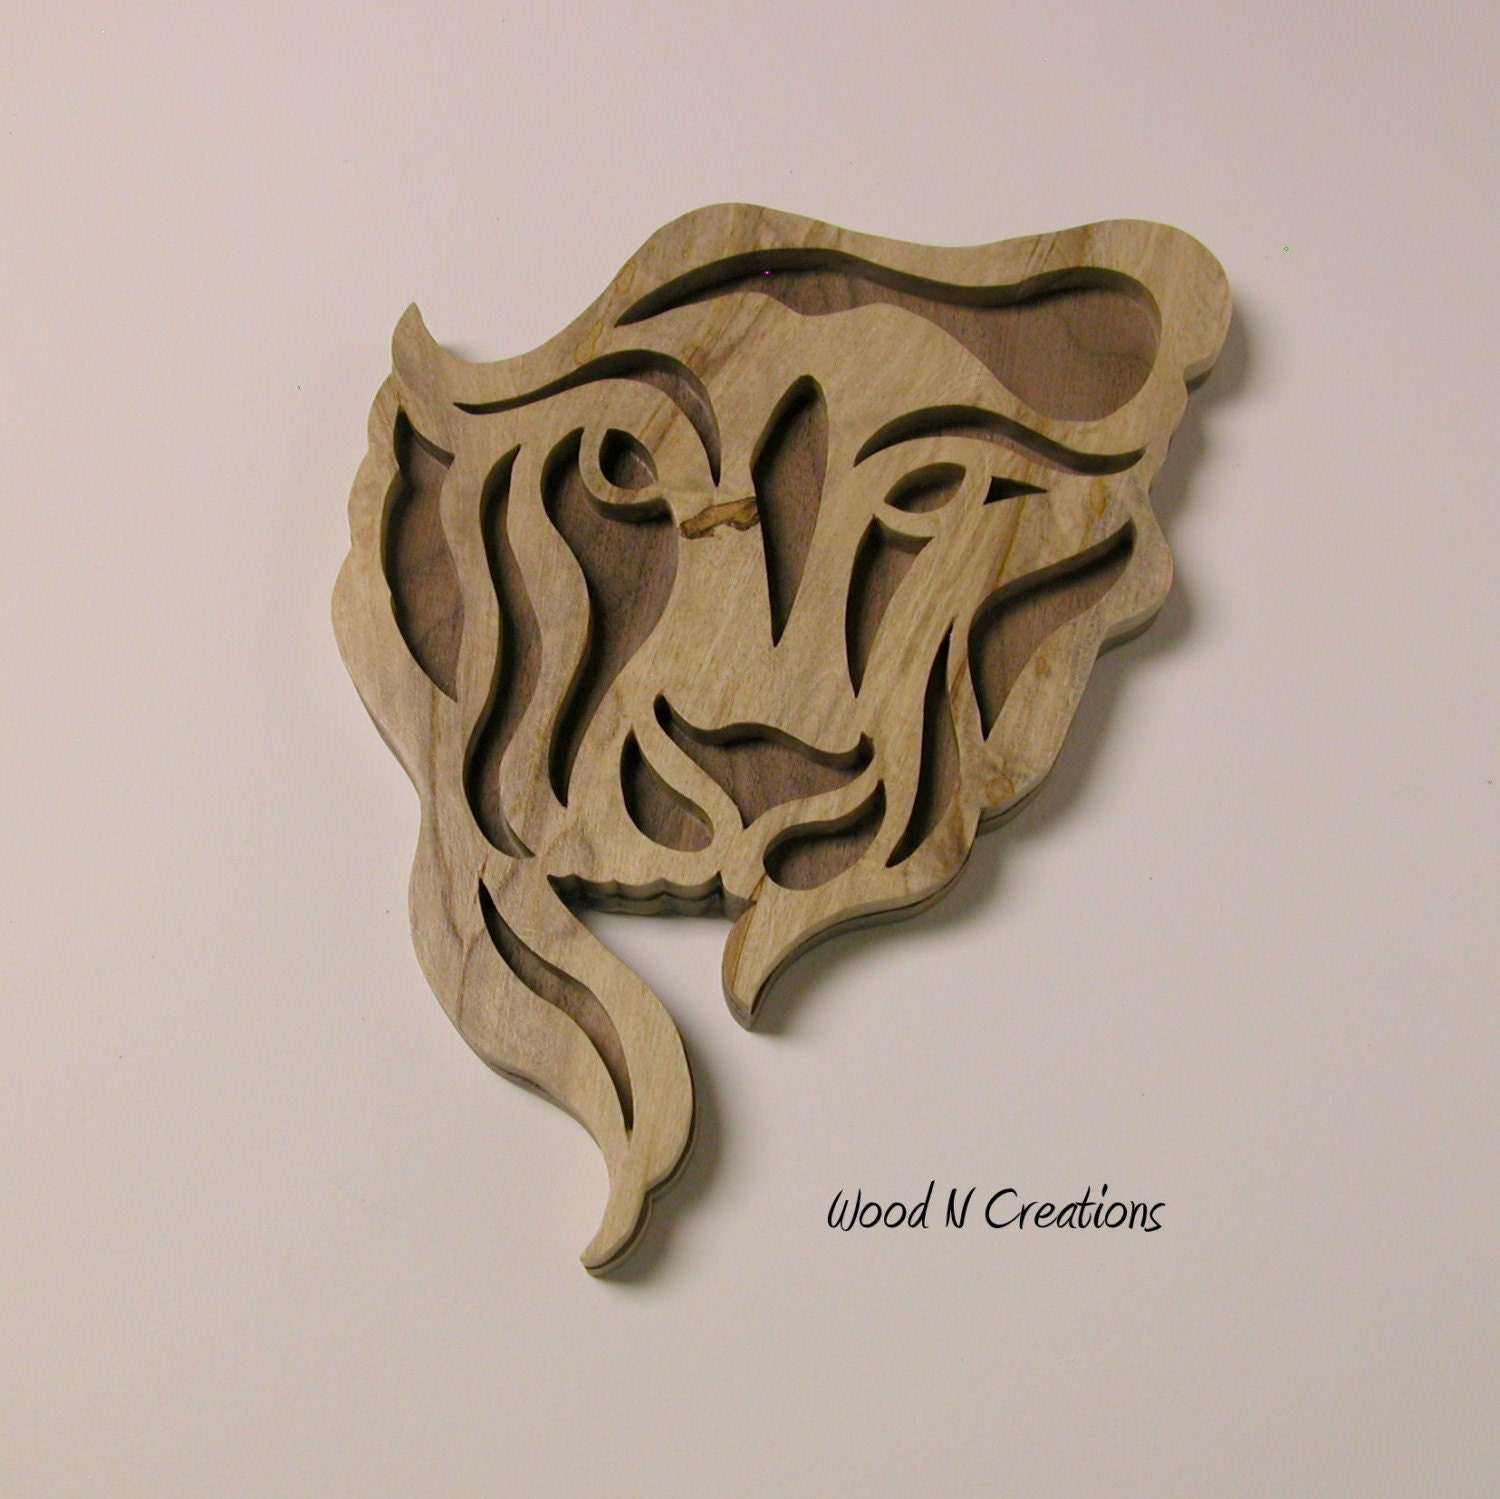 Art Décor: Wooden Lion's Head Wall Art / Home Decor With FREE